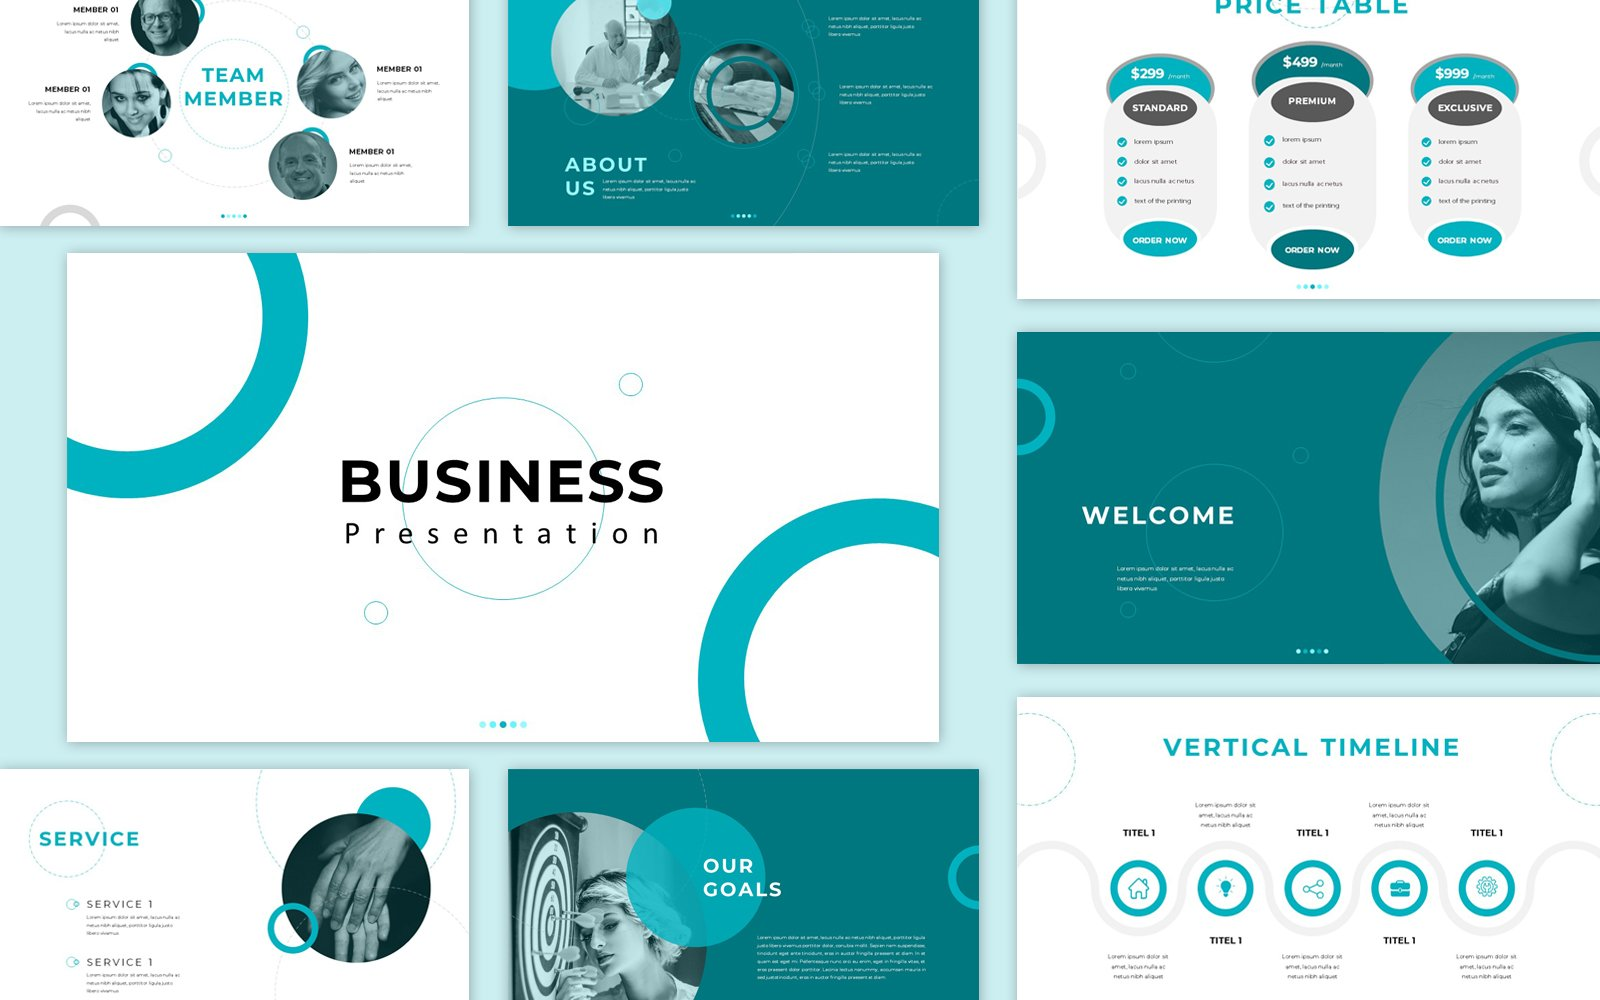 Business Presentation PowerPoint Template Turquoise color